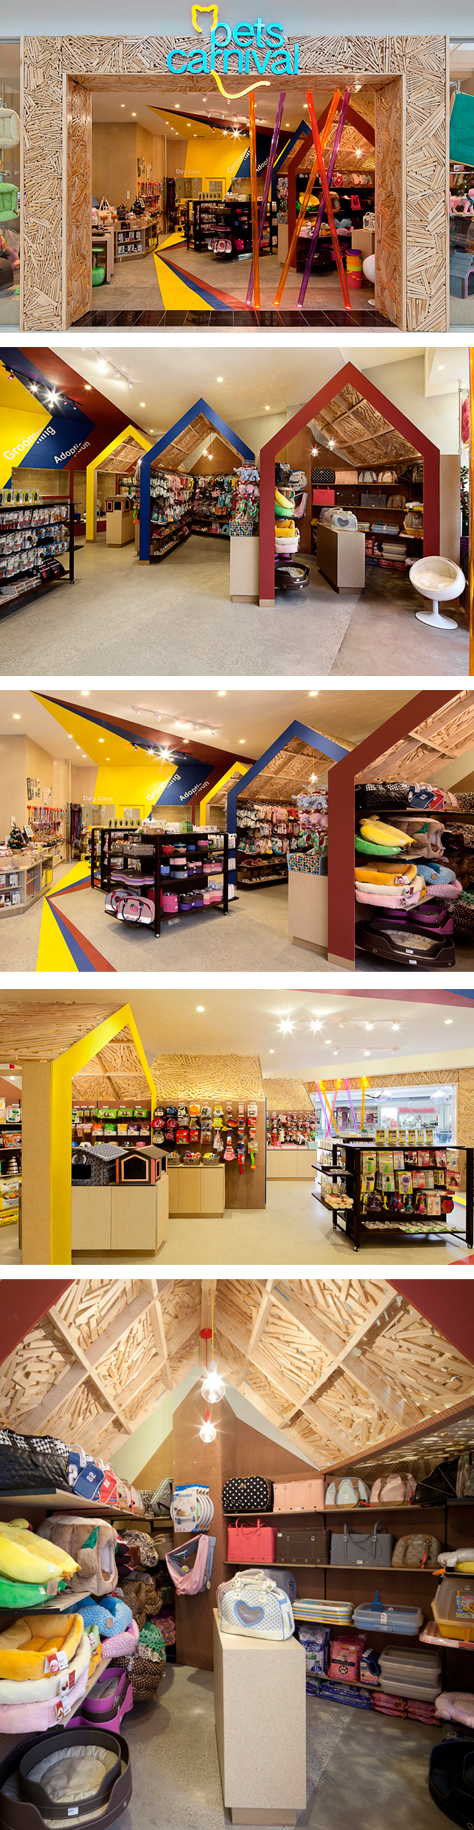 Pets Carnival Store By Rptecture Architects Melbourne Australia Toy Store Design Pet Store Design Kids Store